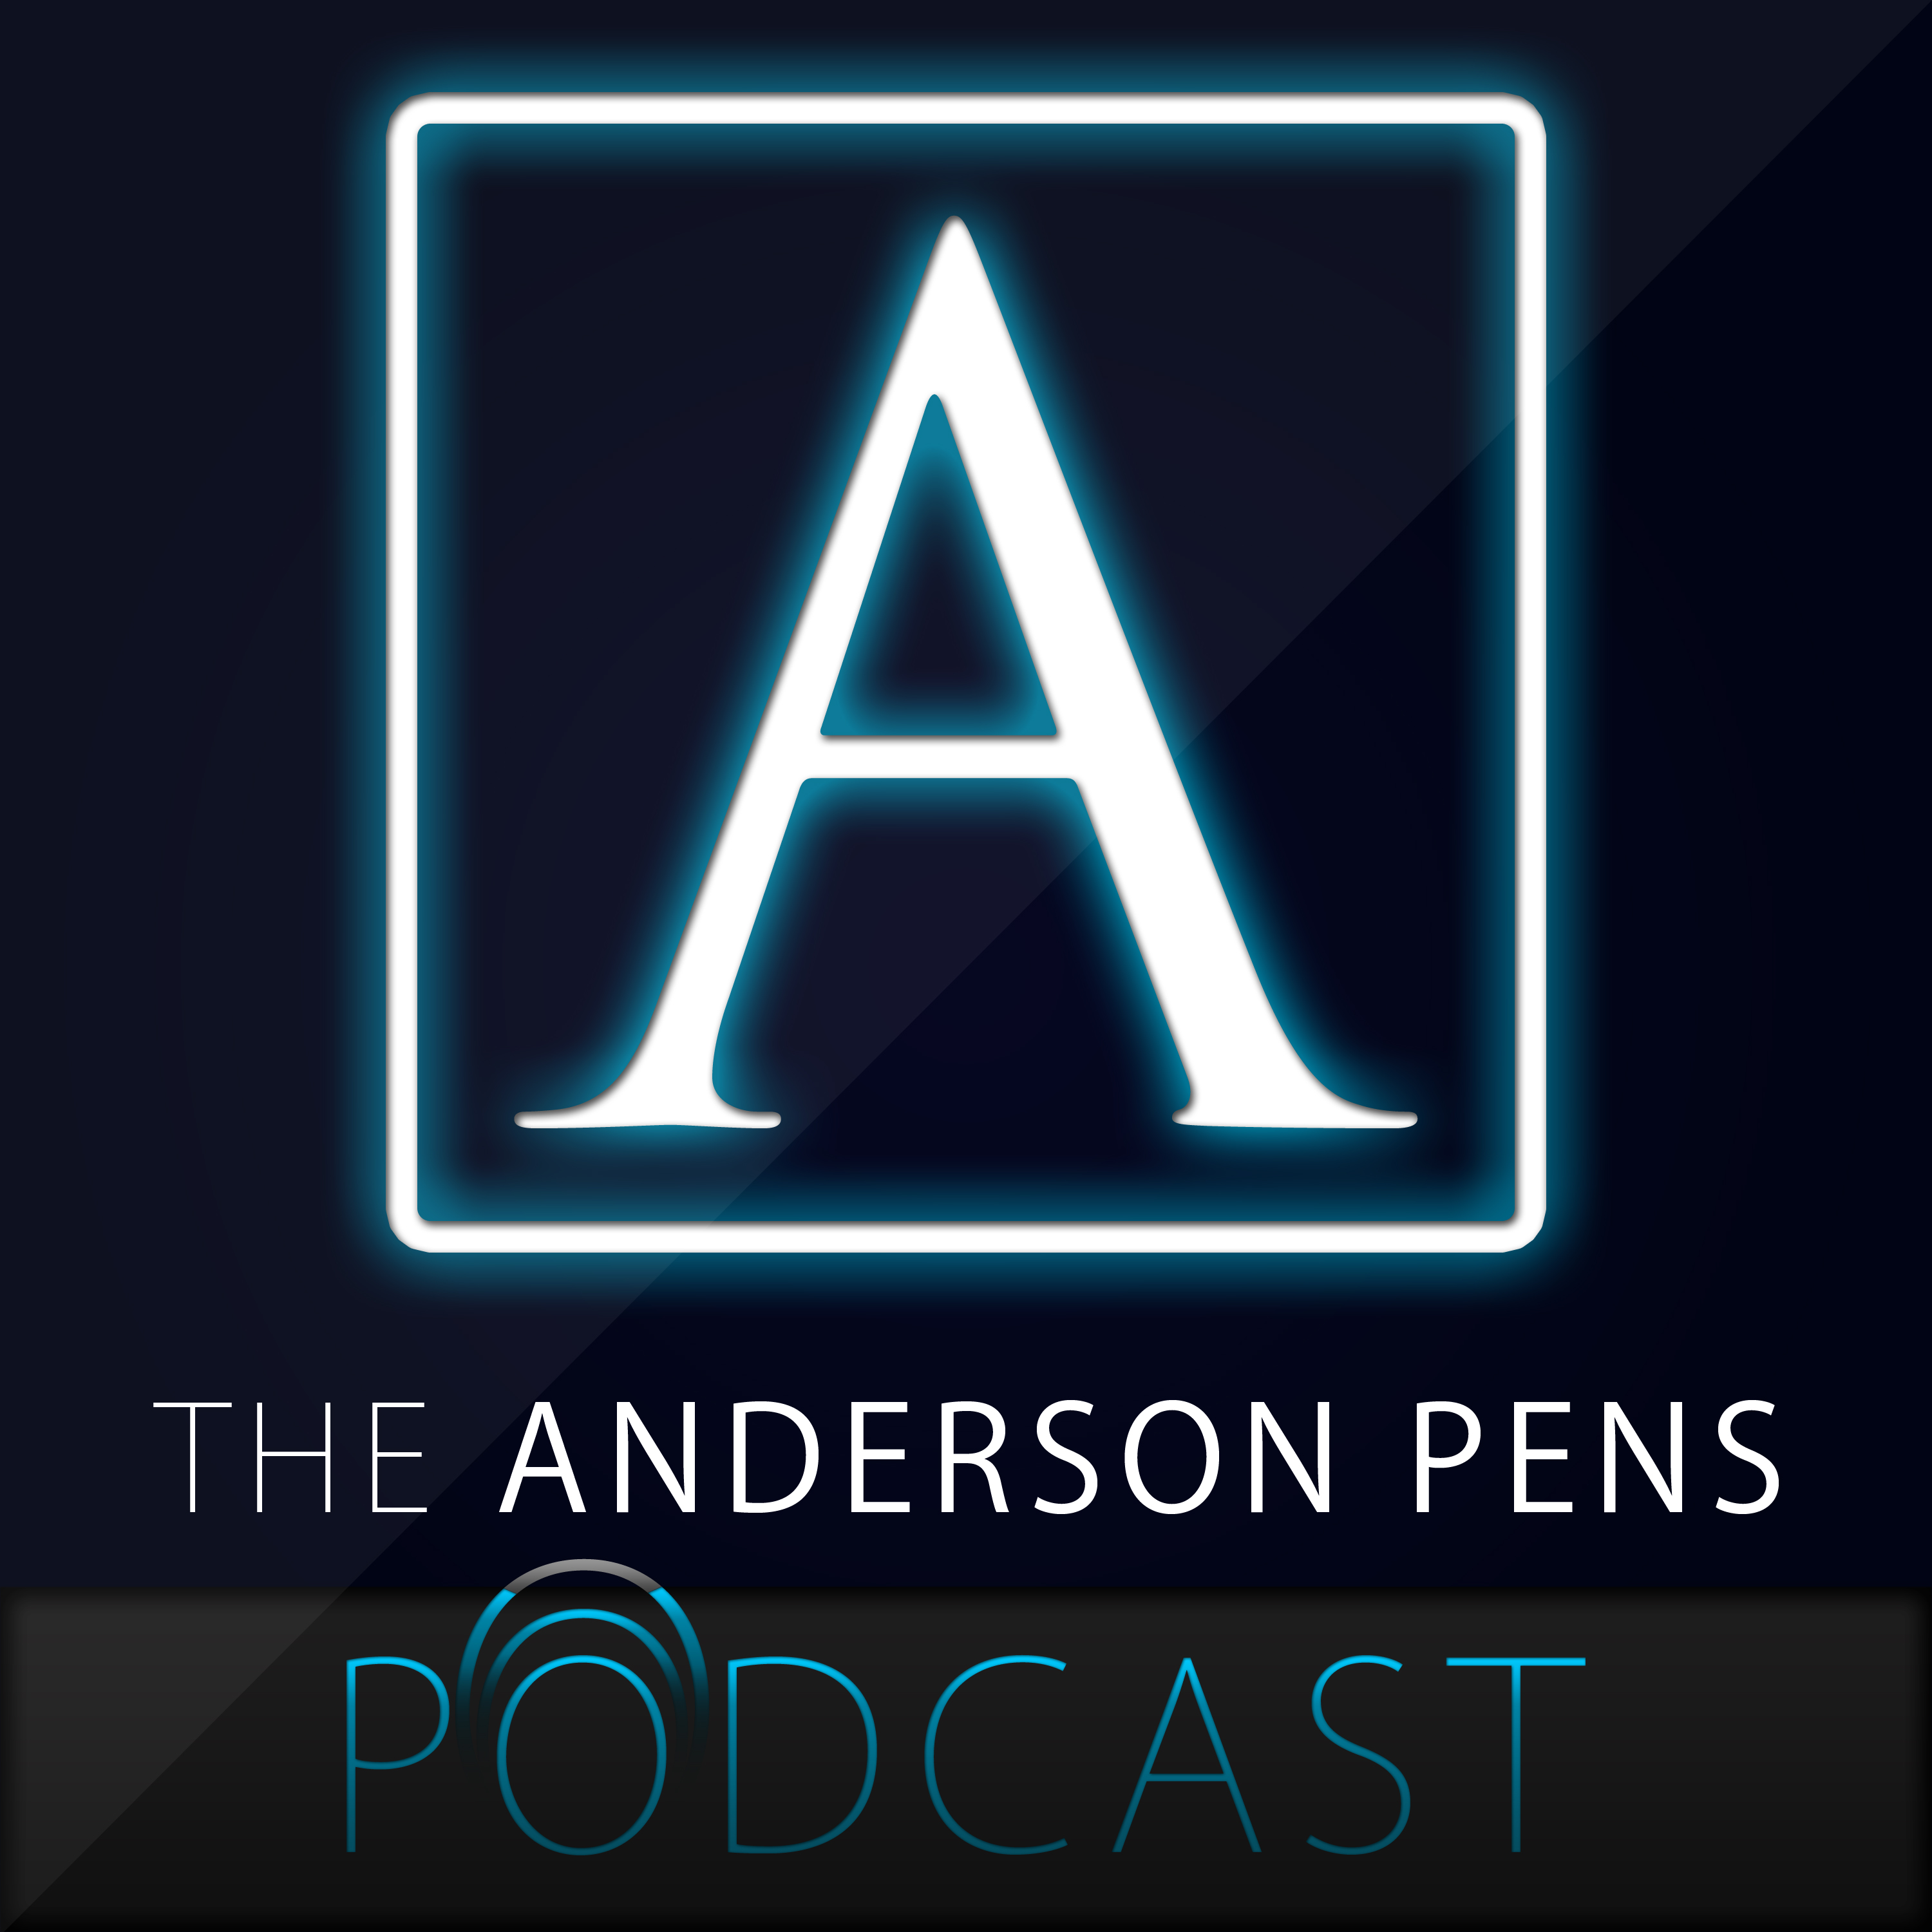 Anderson Pens Podcast